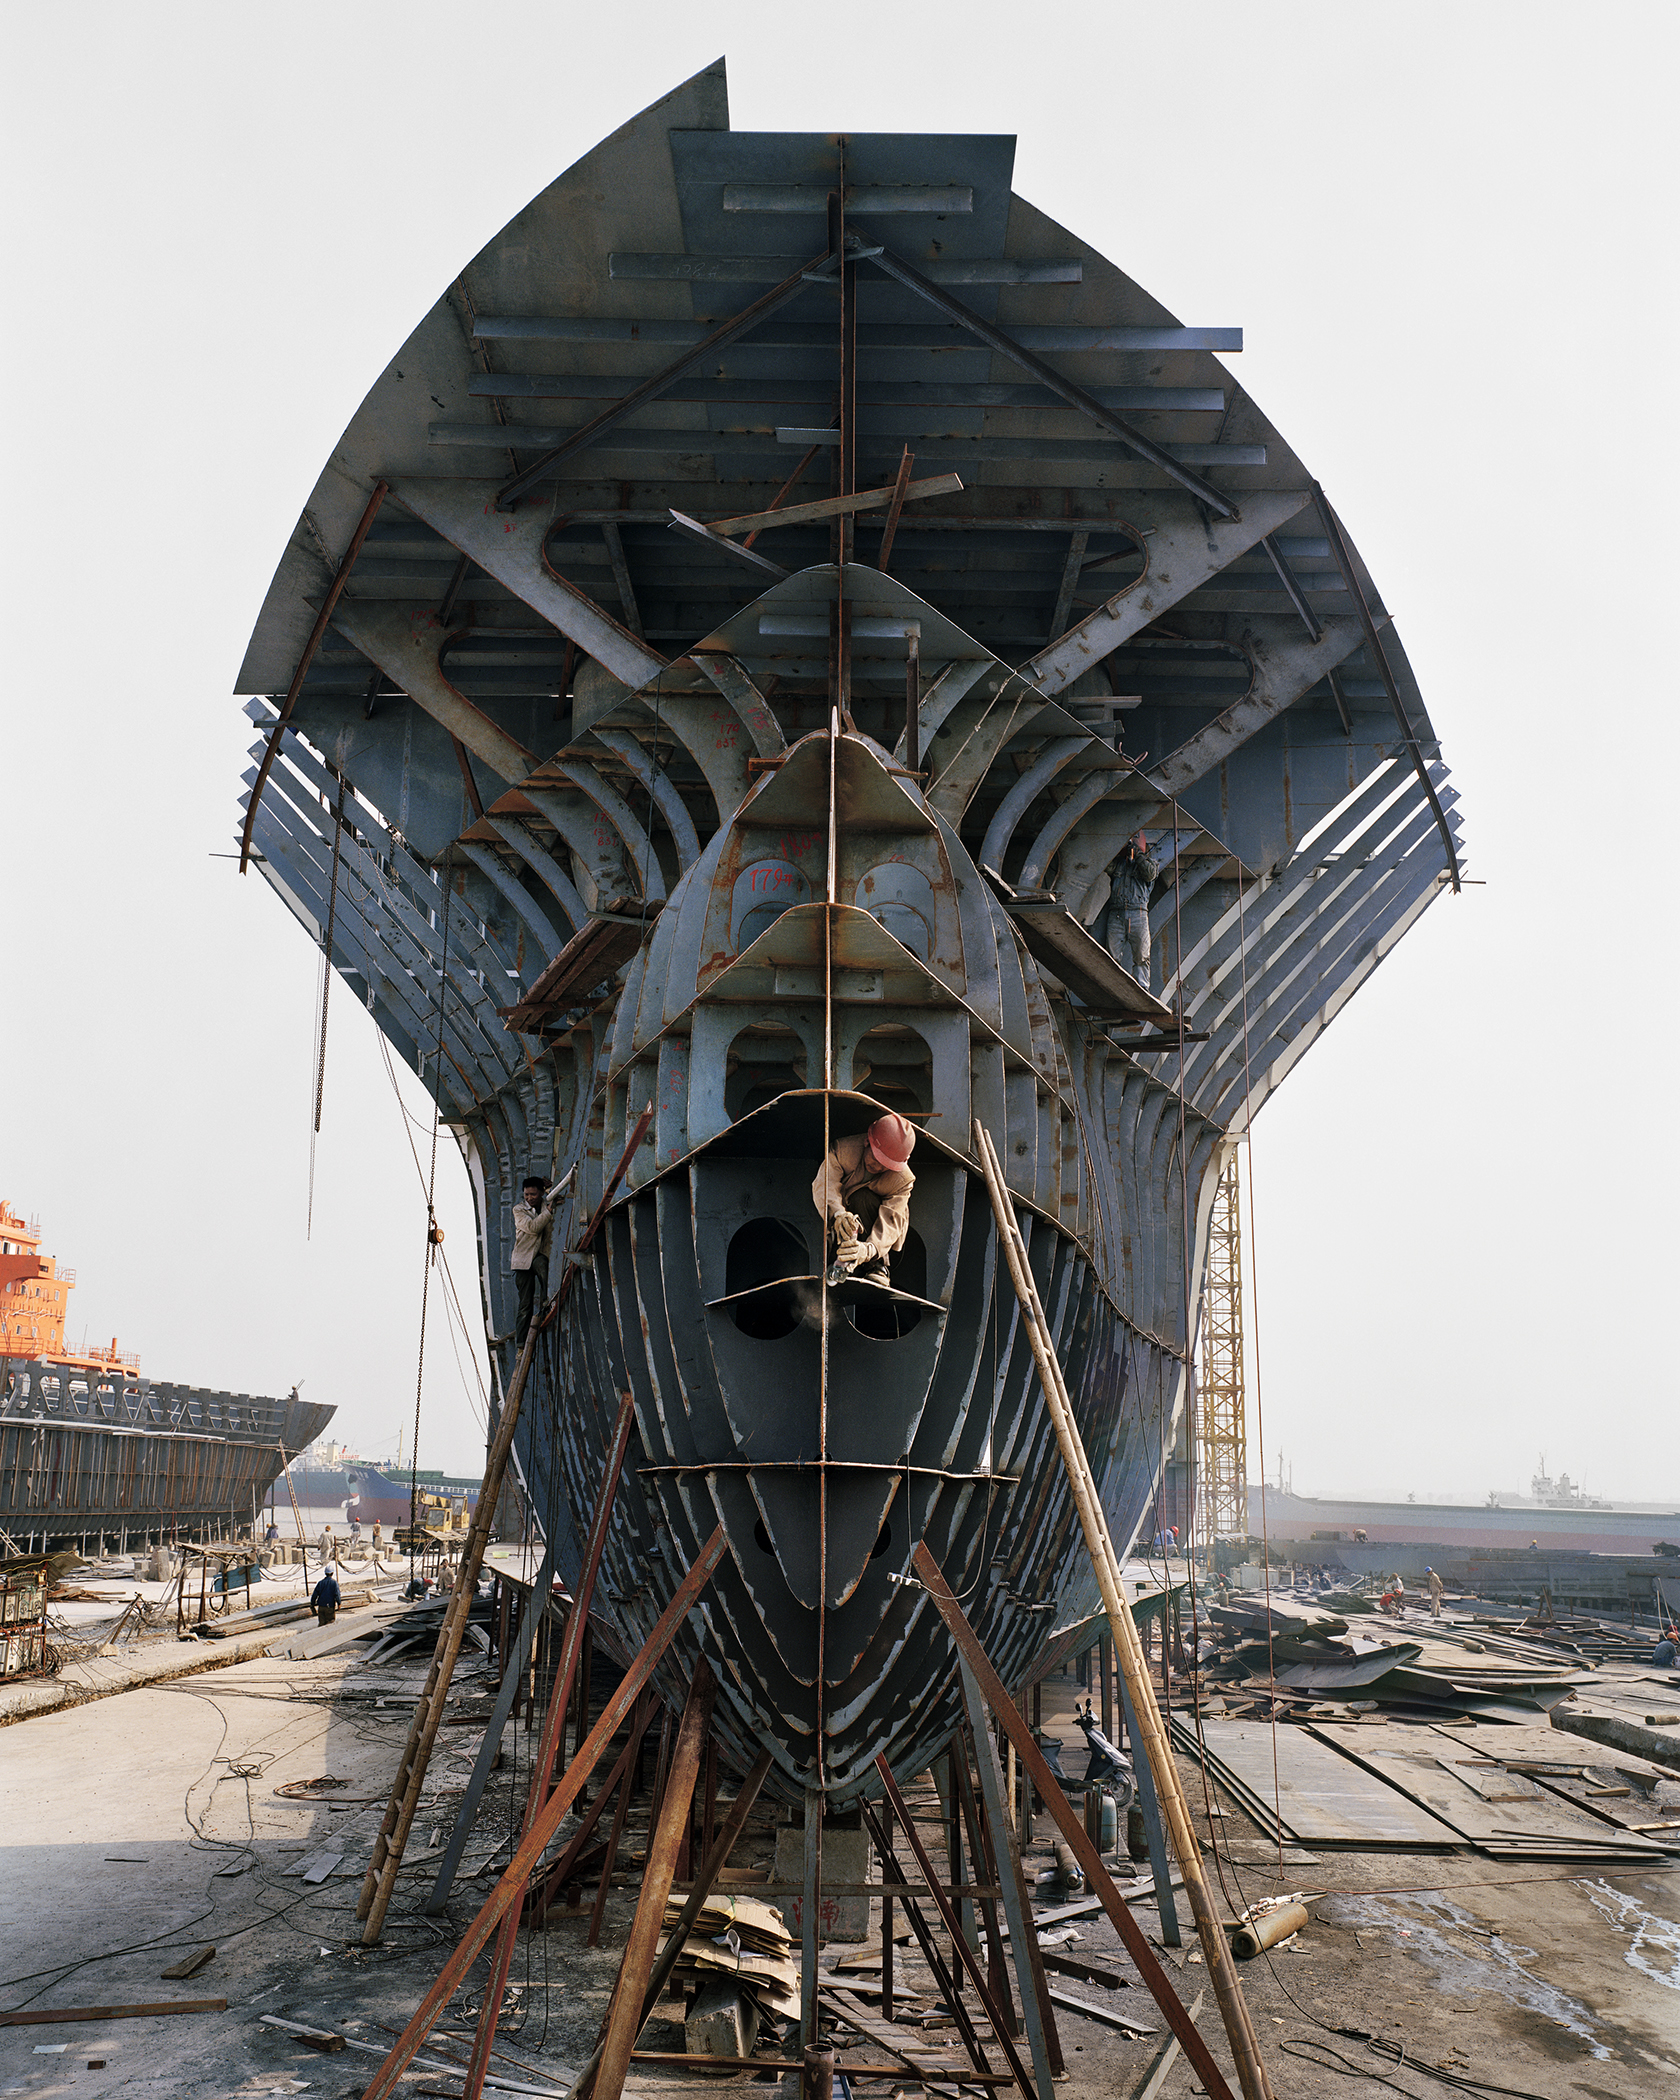 Shipyard # 12, Qili Port, Zhejiang Province, China. 2005. From the series China.